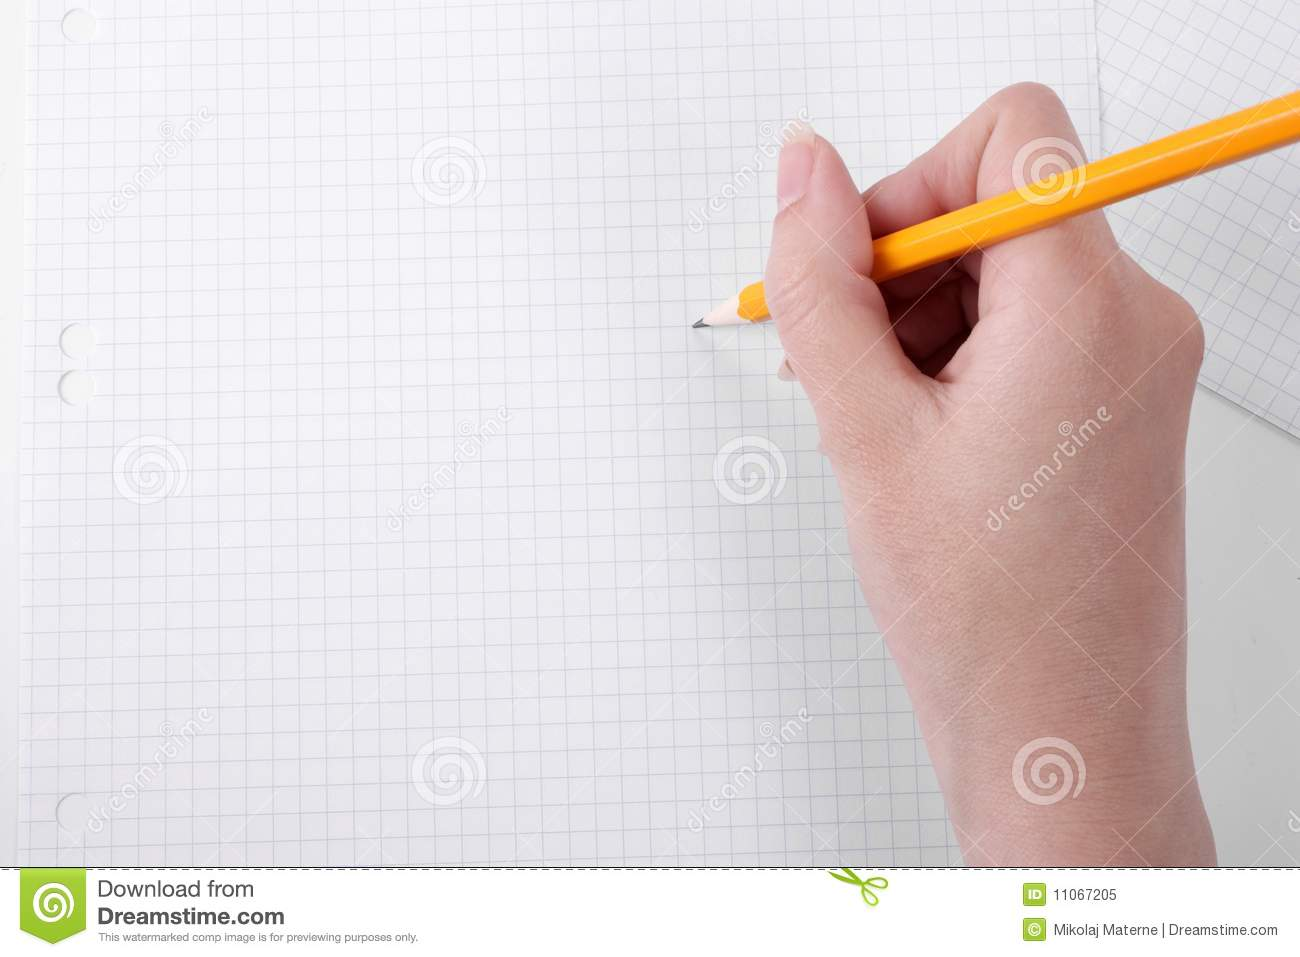 Drawing on graph paper with a pencil